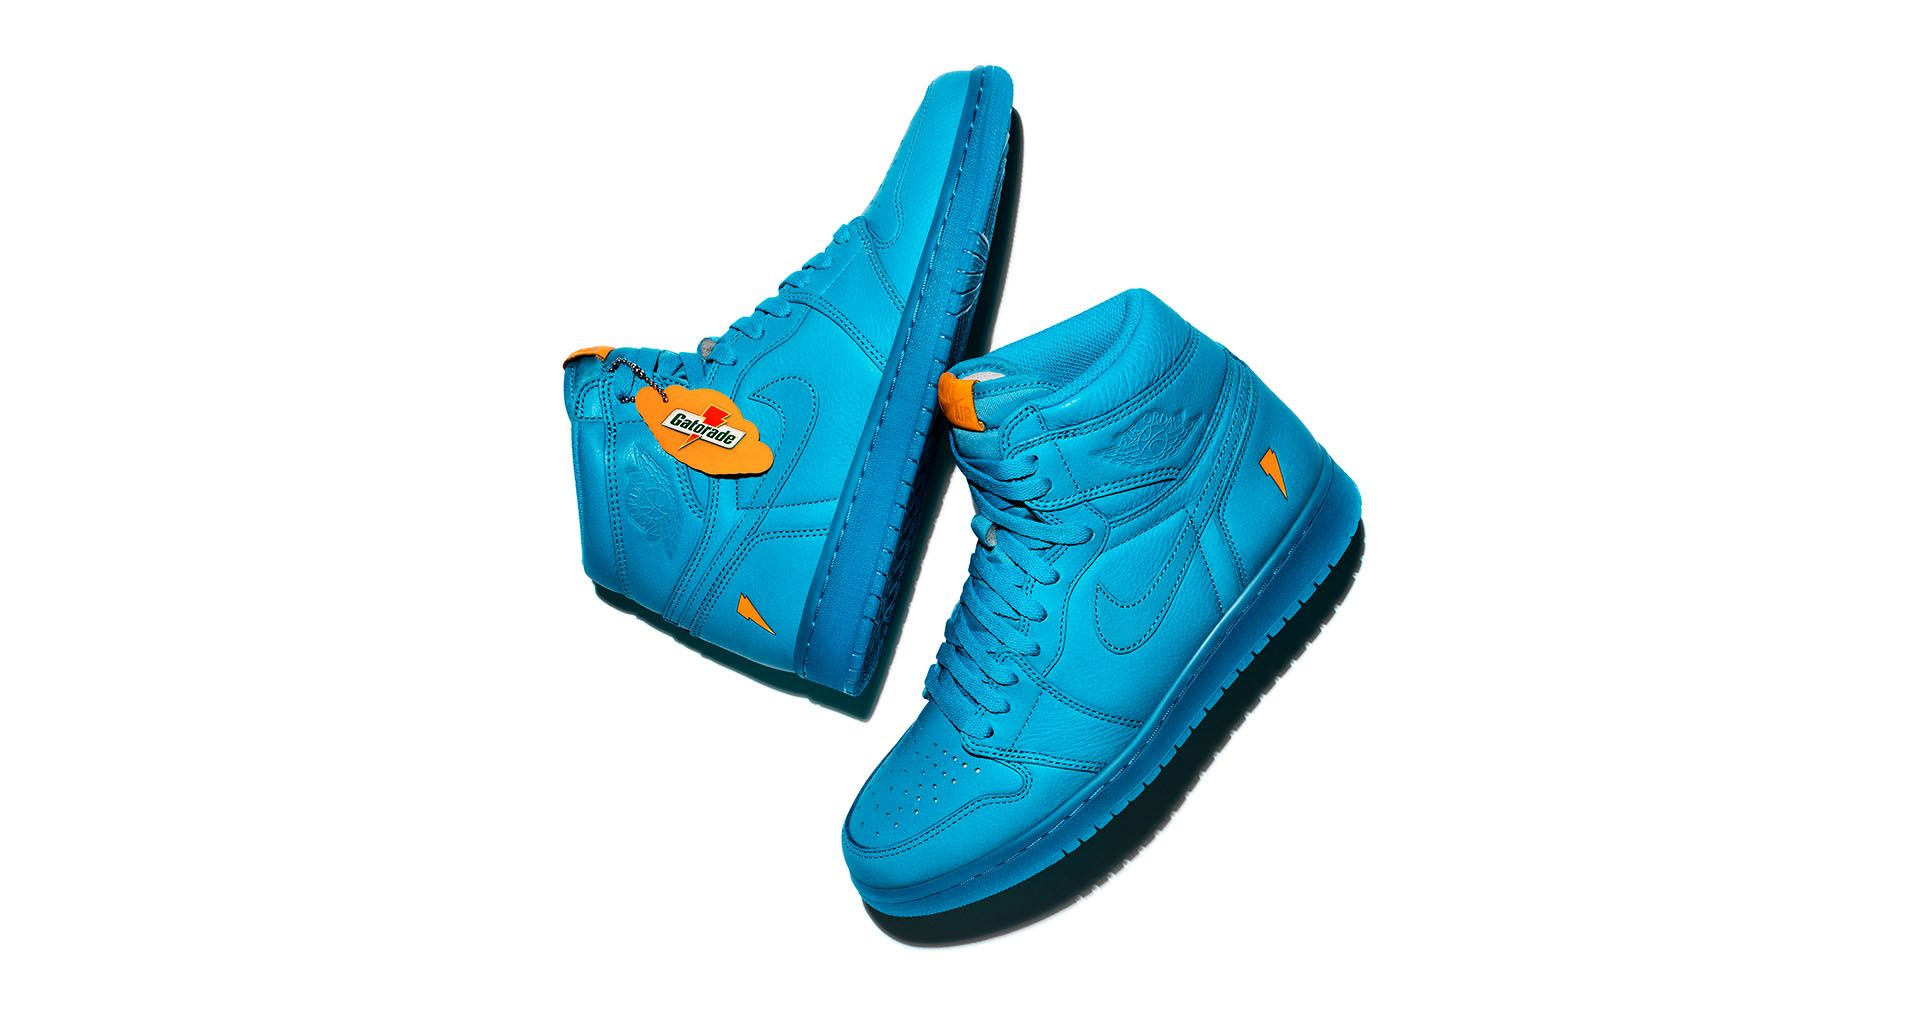 922a6429629a31 Air Jordan 1 High Gatorade  Cool Blue  Release Date. Nike⁠+ SNKRS